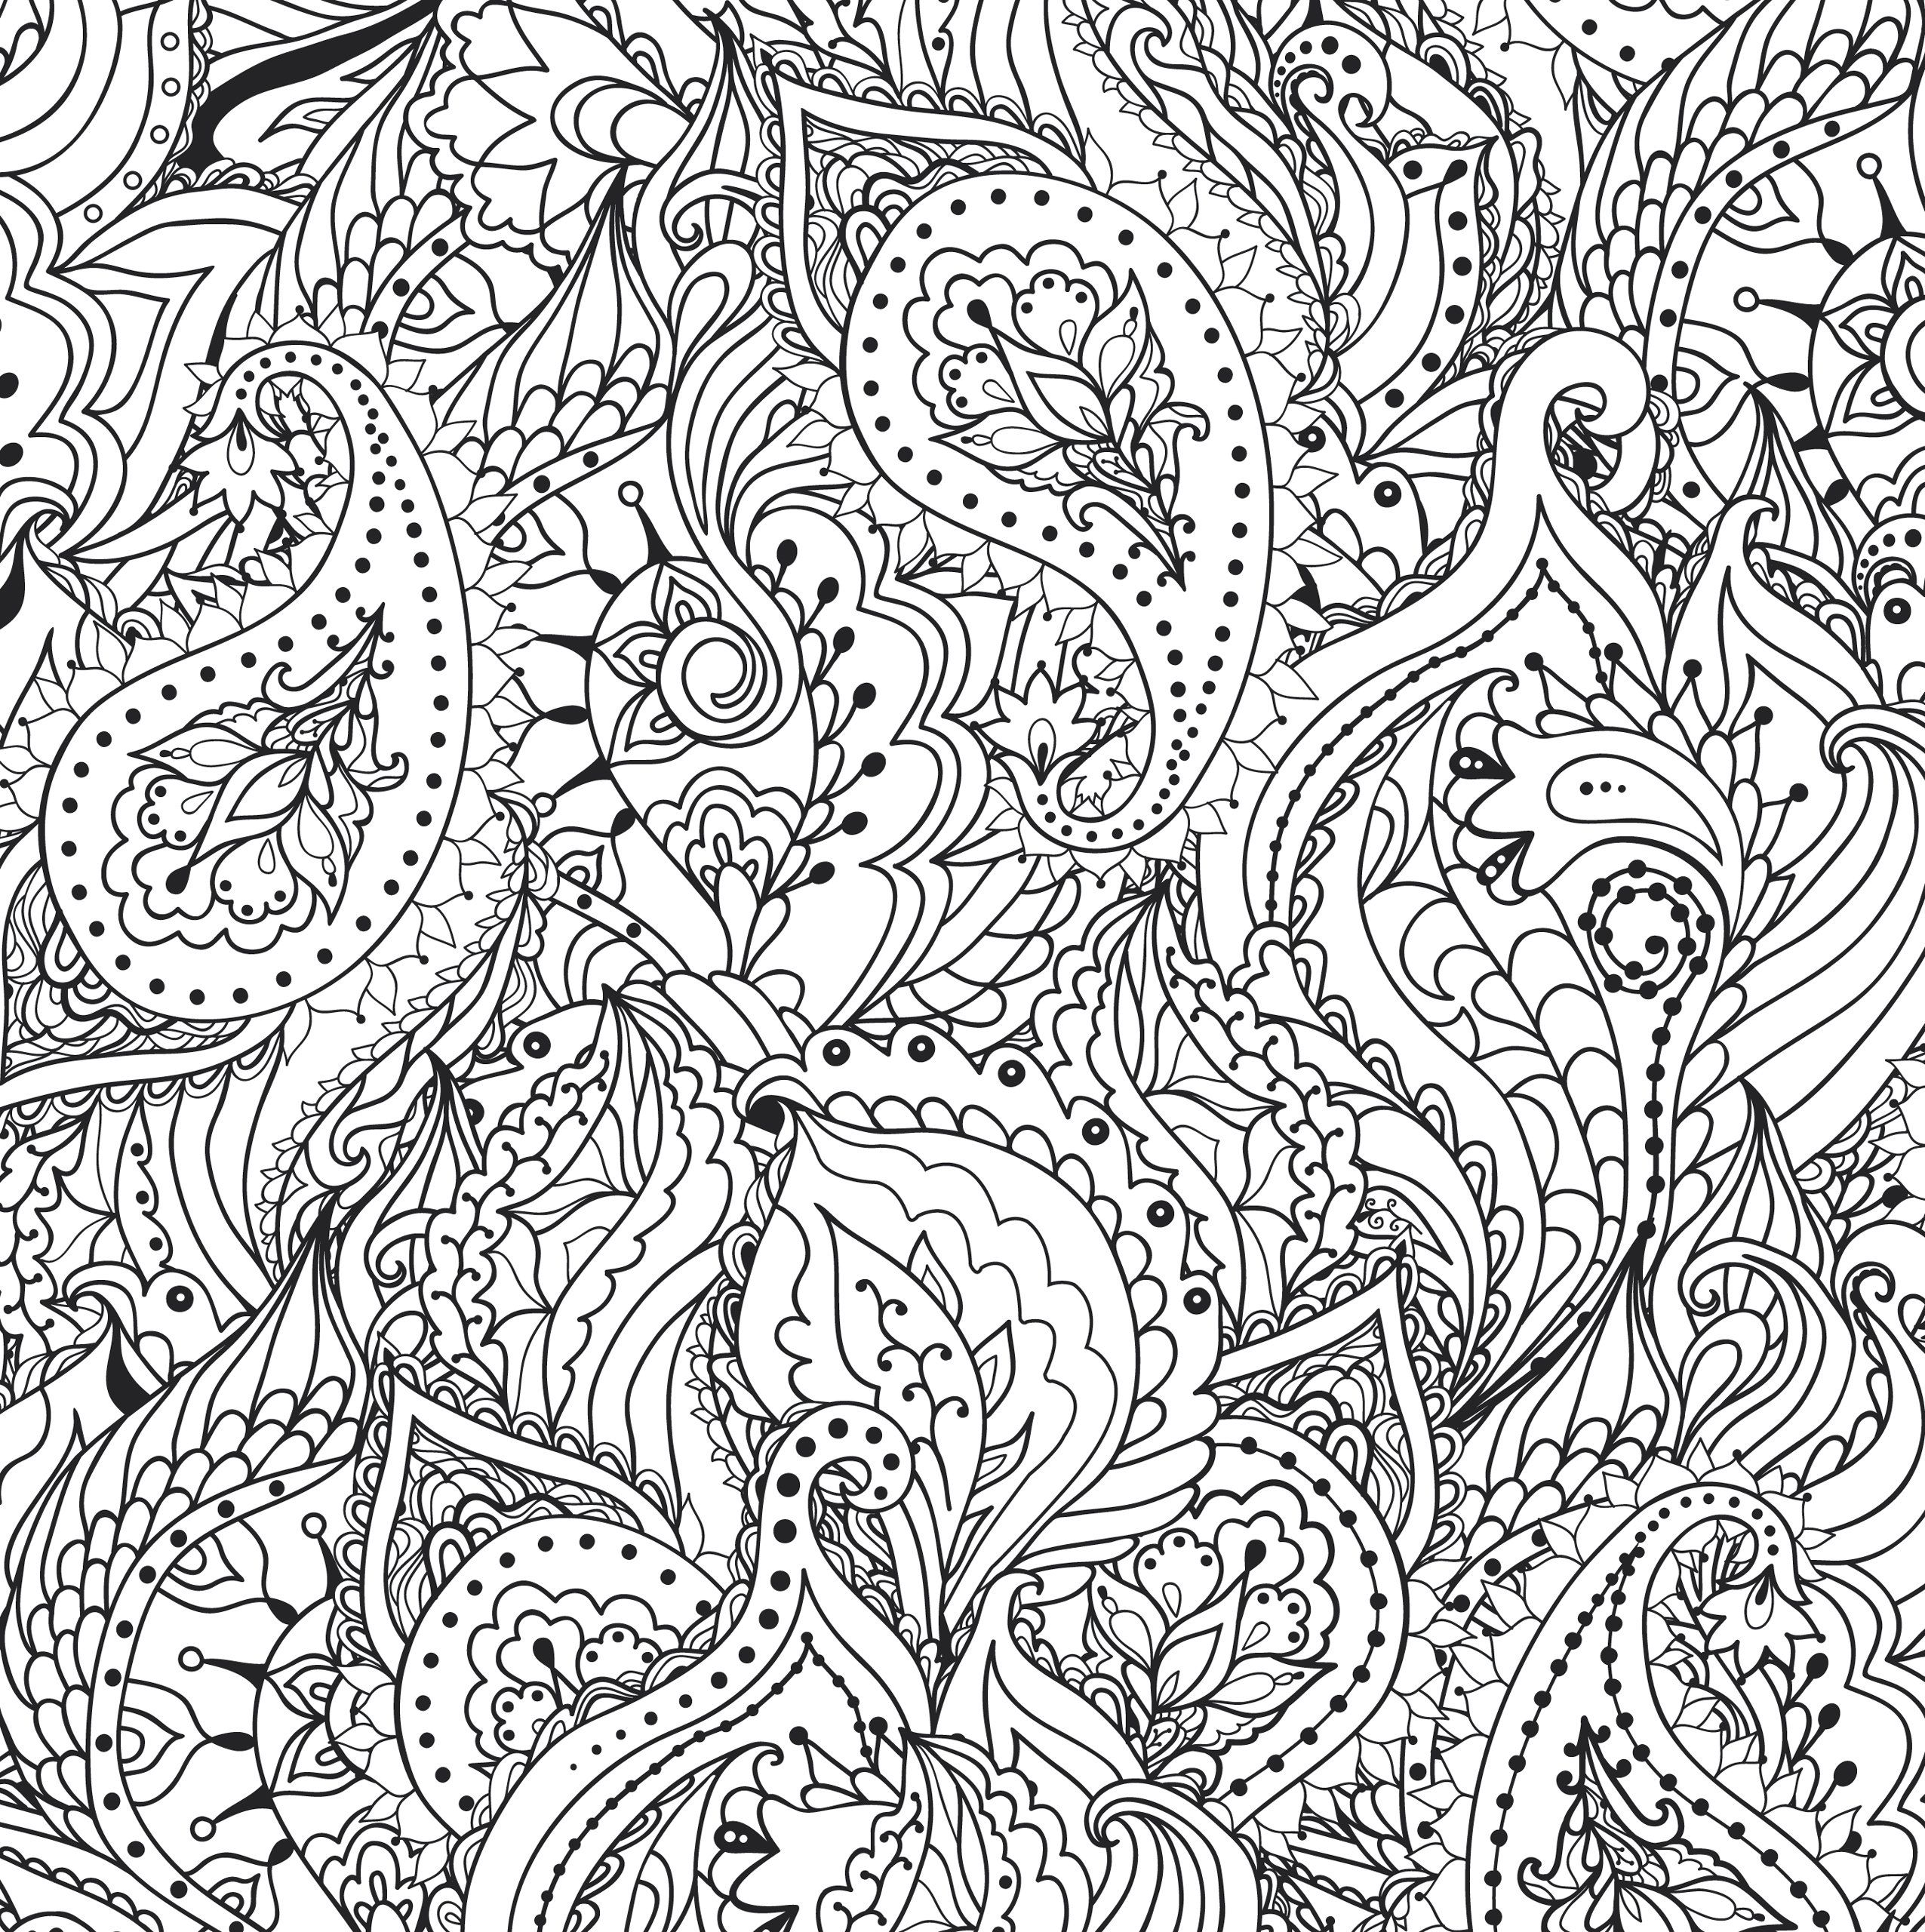 Buy Peaceful Paisleys Artists Coloring Book Online At Low